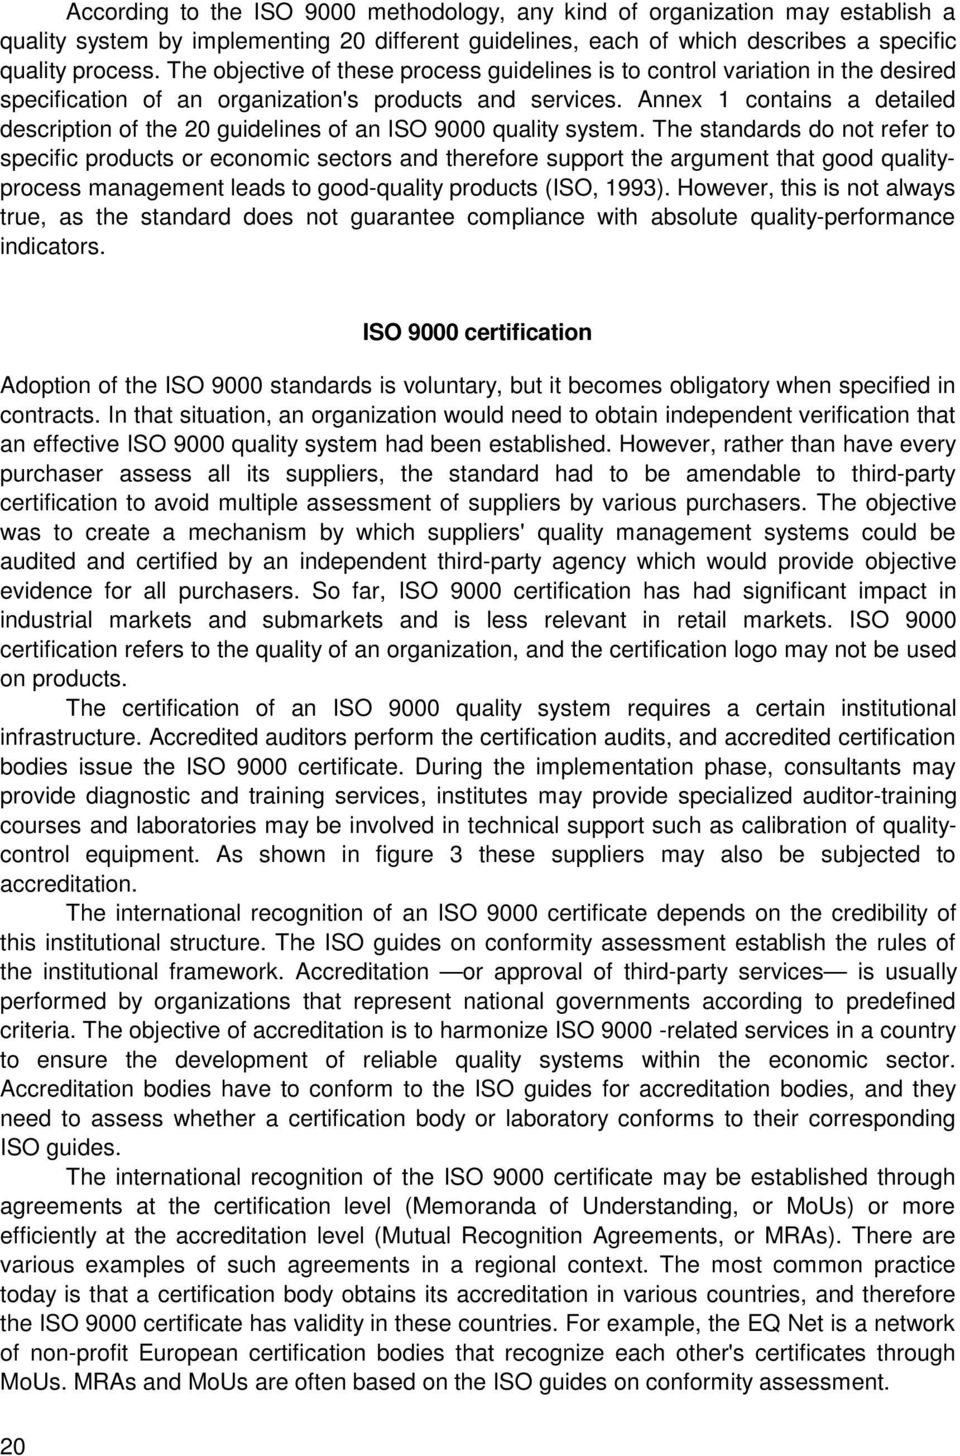 Annex 1 contains a detailed description of the 20 guidelines of an ISO 9000 quality system.